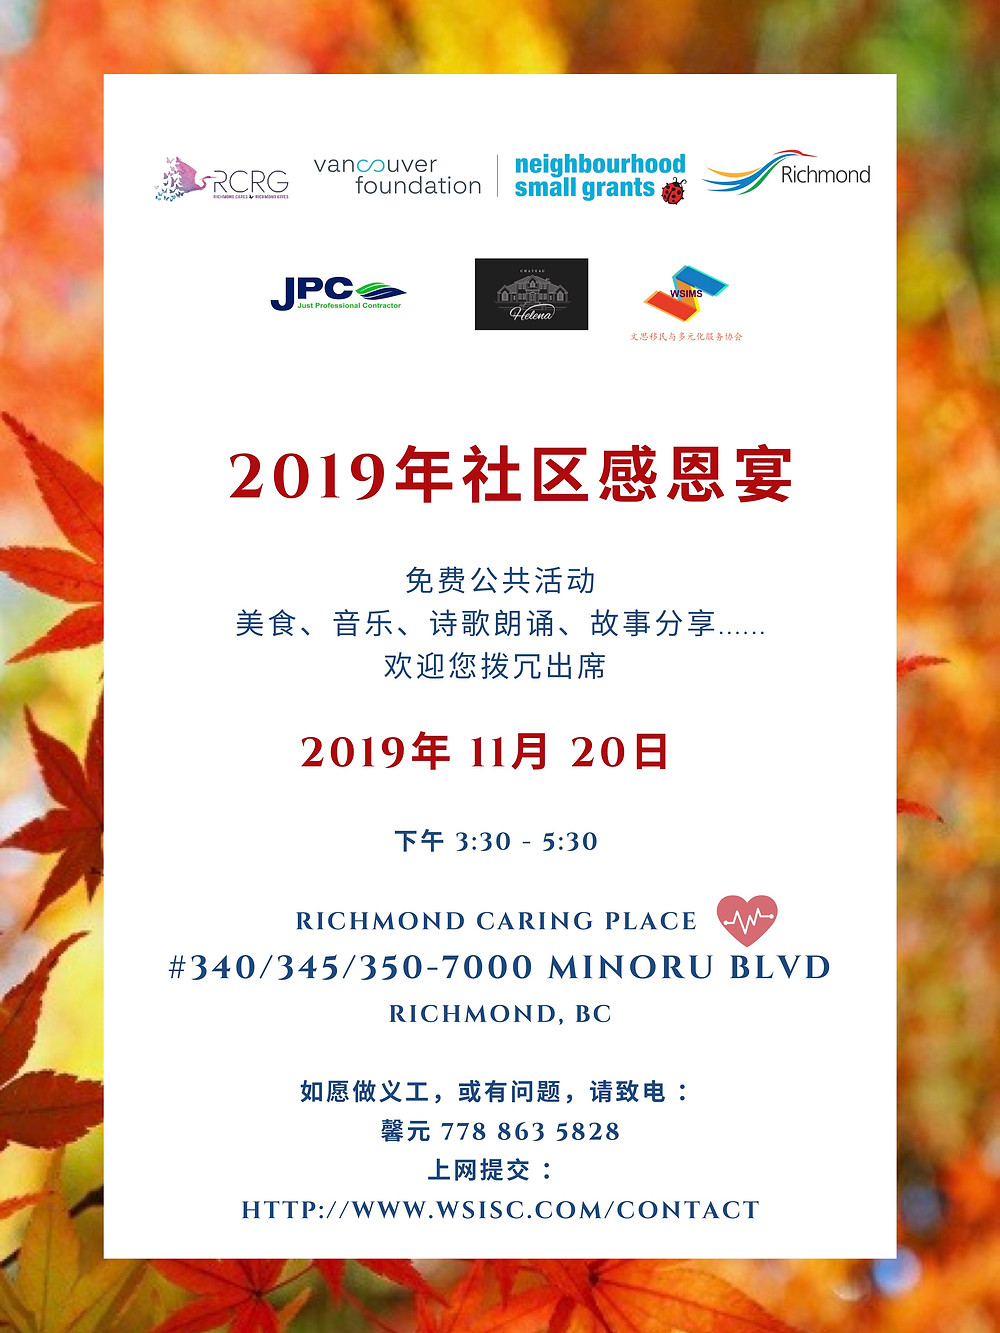 The Giving Heart Community Feast & Holiday Season Celebration 2019, organized by Sophia Zhang and more